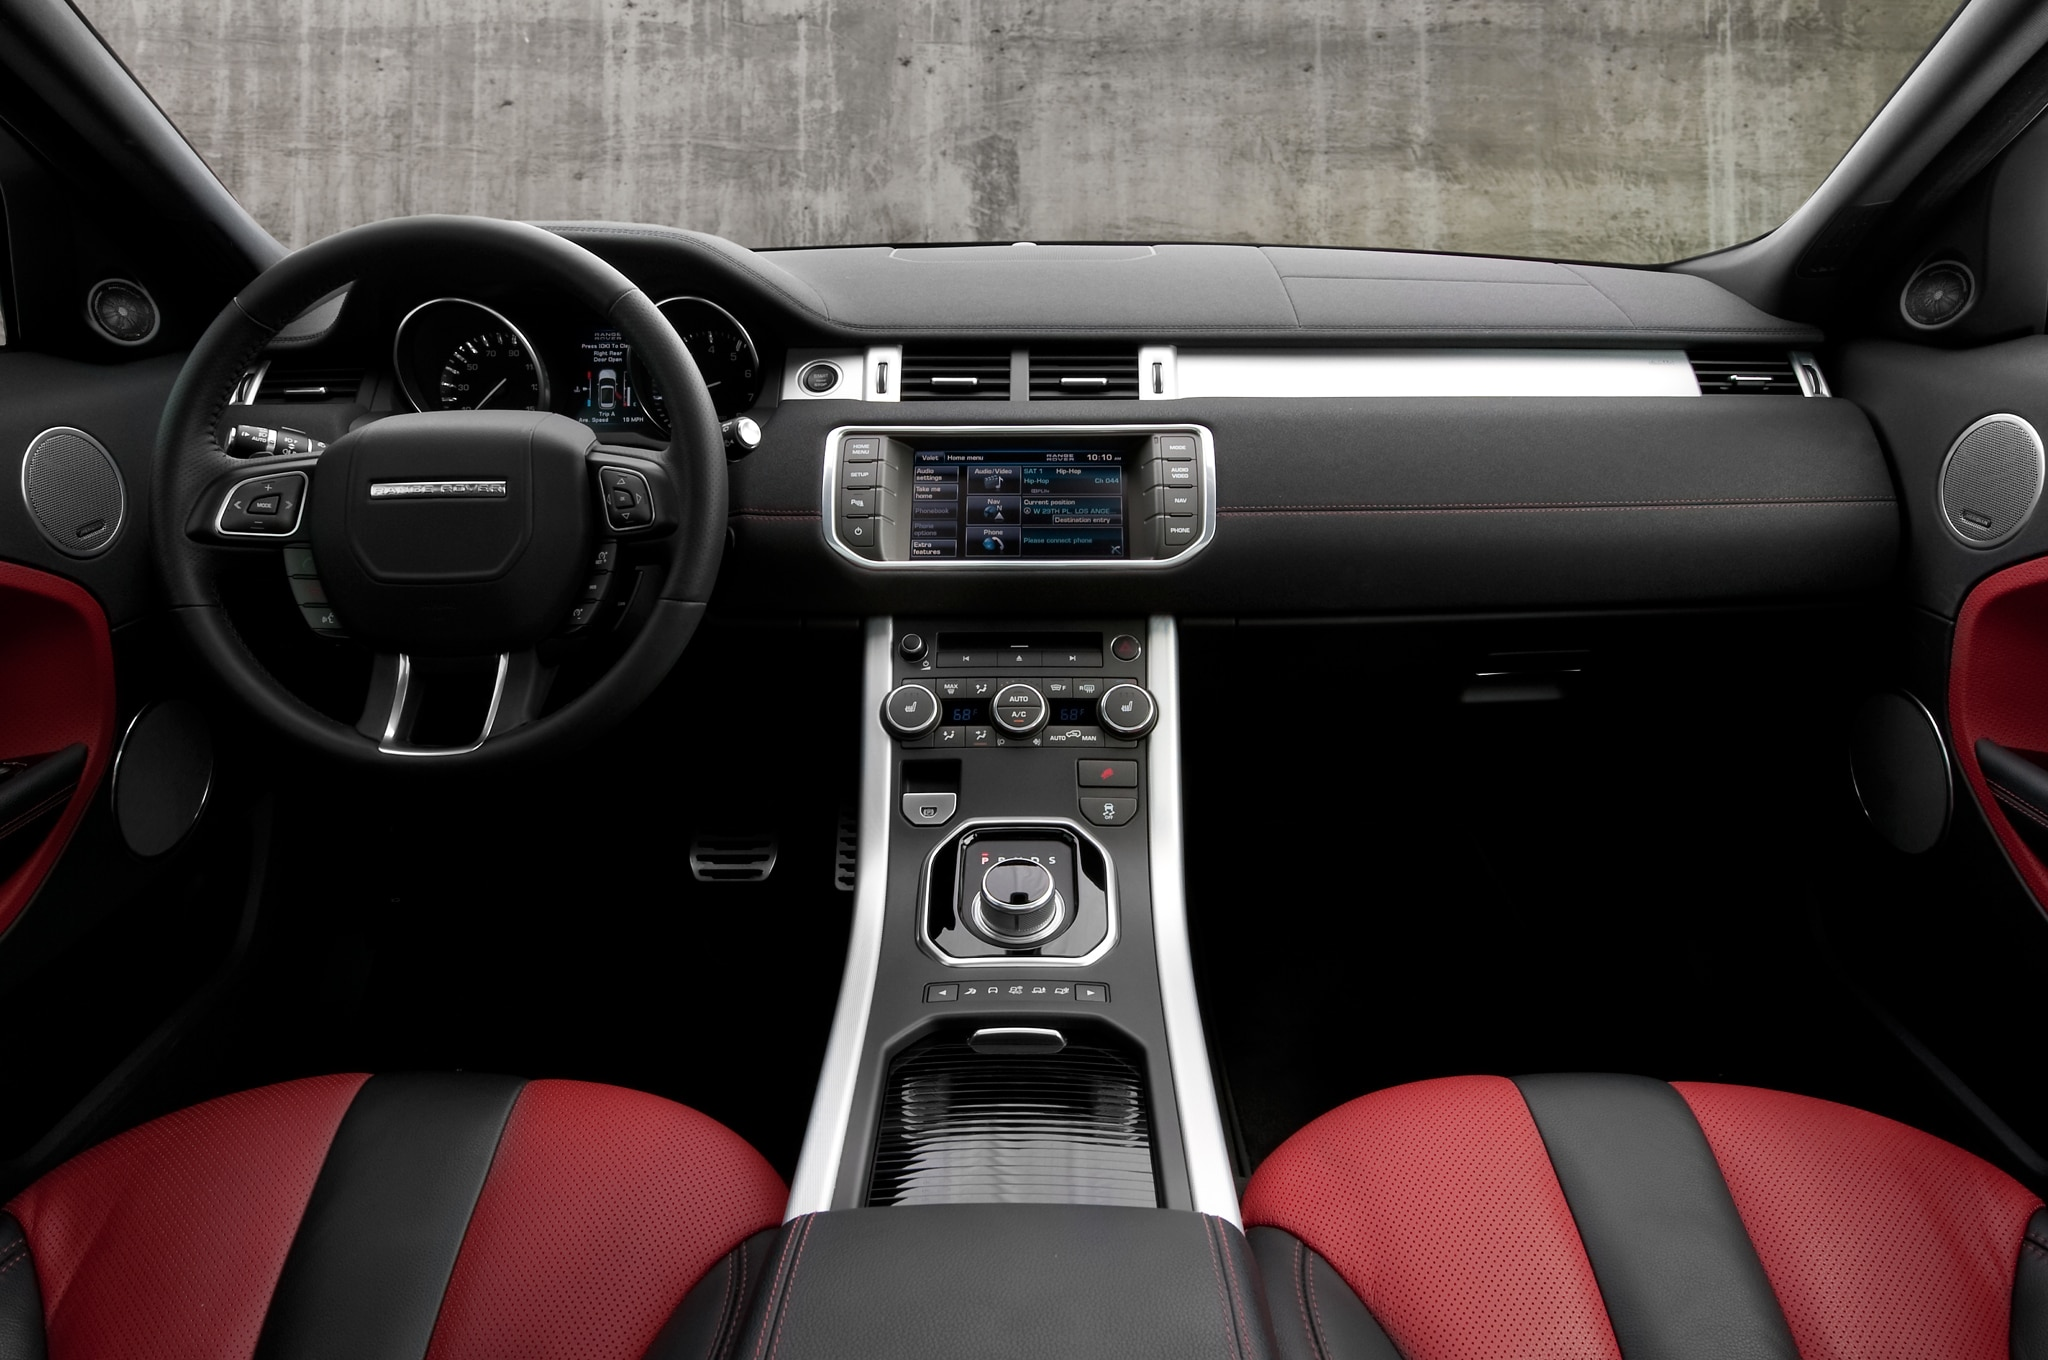 2012 Land Rover Range Rover Evoque Interior